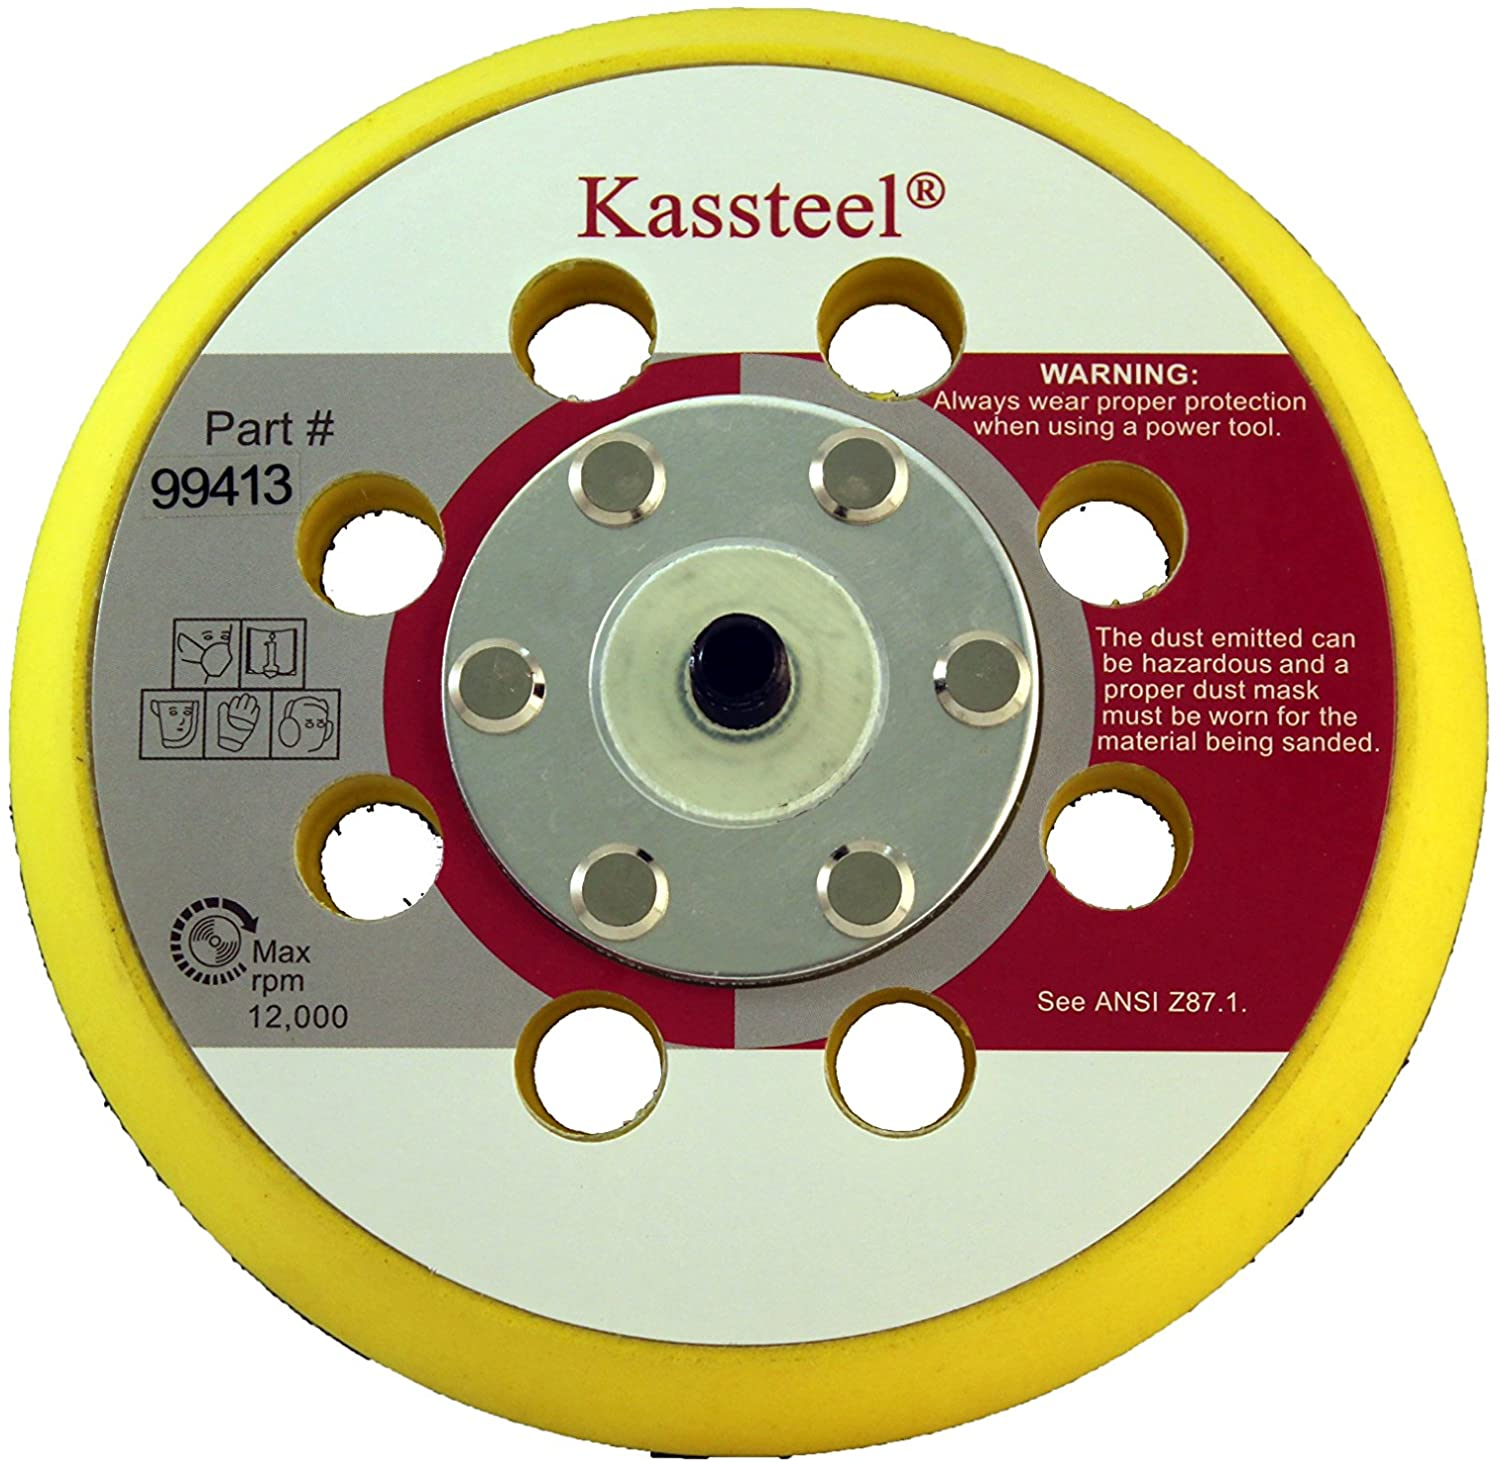 Kassteel 99413 5 by 8 Hole Back-up Pad 13mm Thick 5/16-24 Threaded Hub for Hook & Loop Discs (1 Pad)